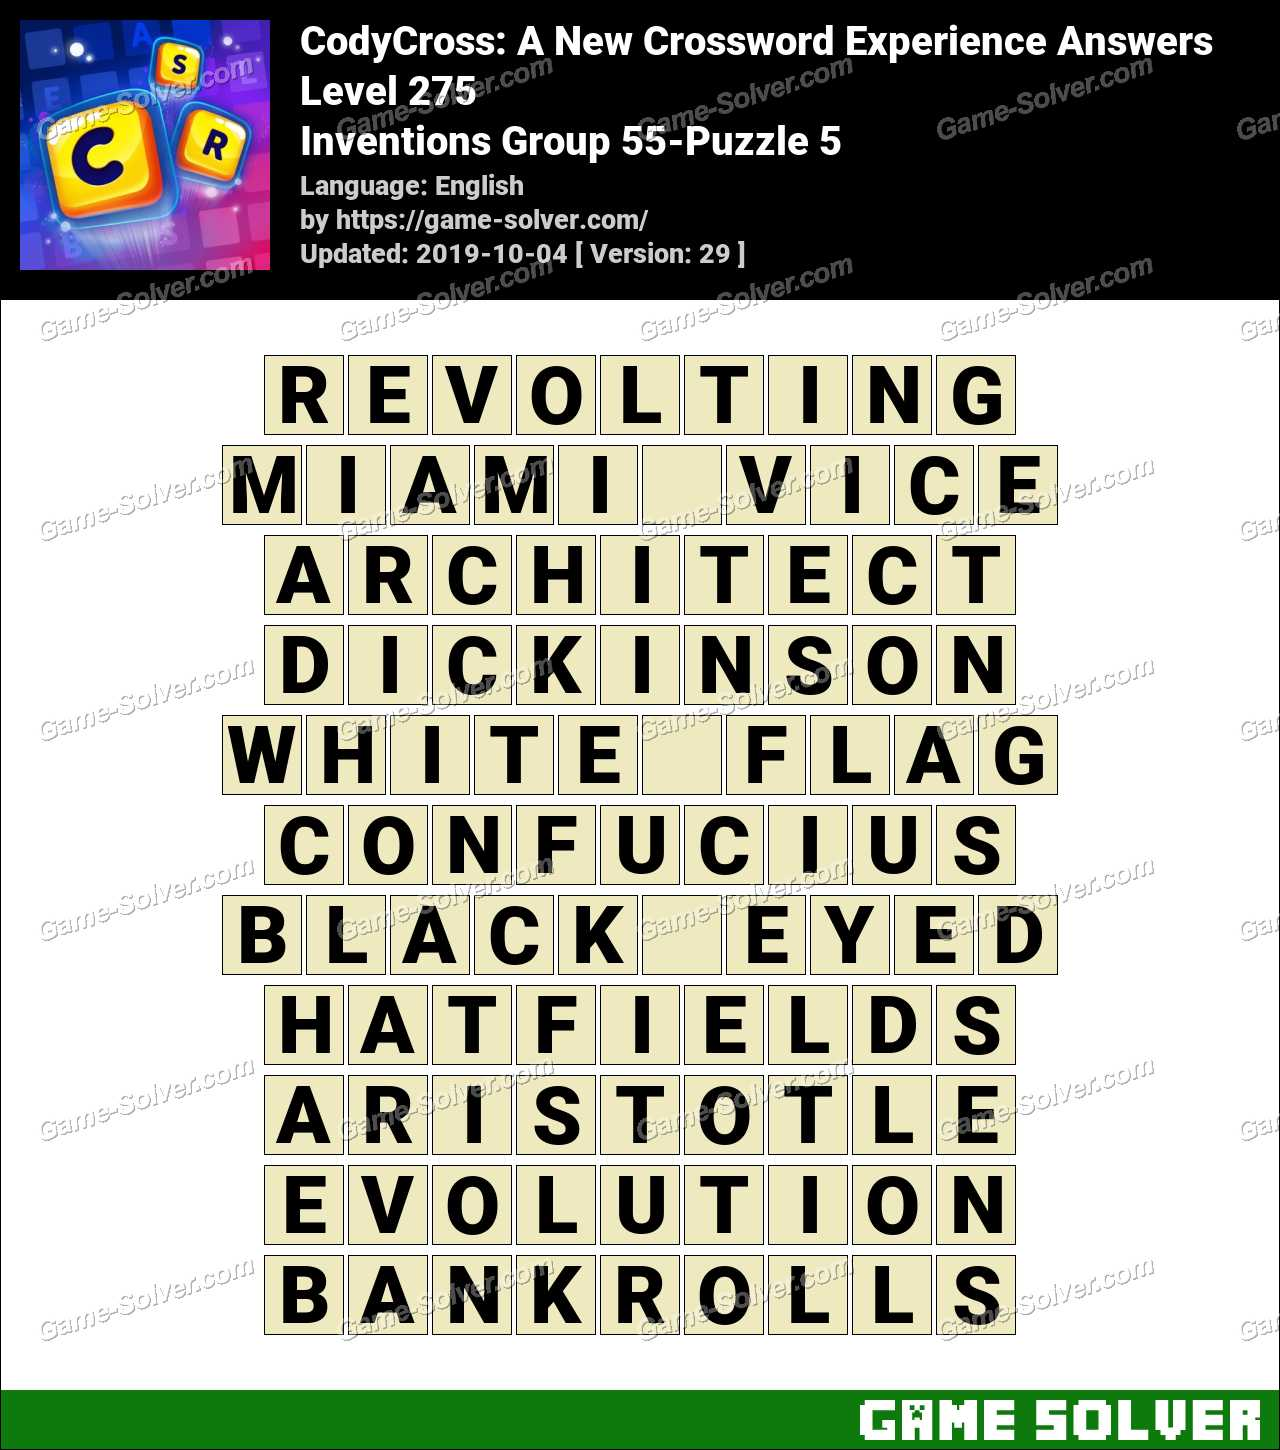 CodyCross Inventions Group 55-Puzzle 5 Answers